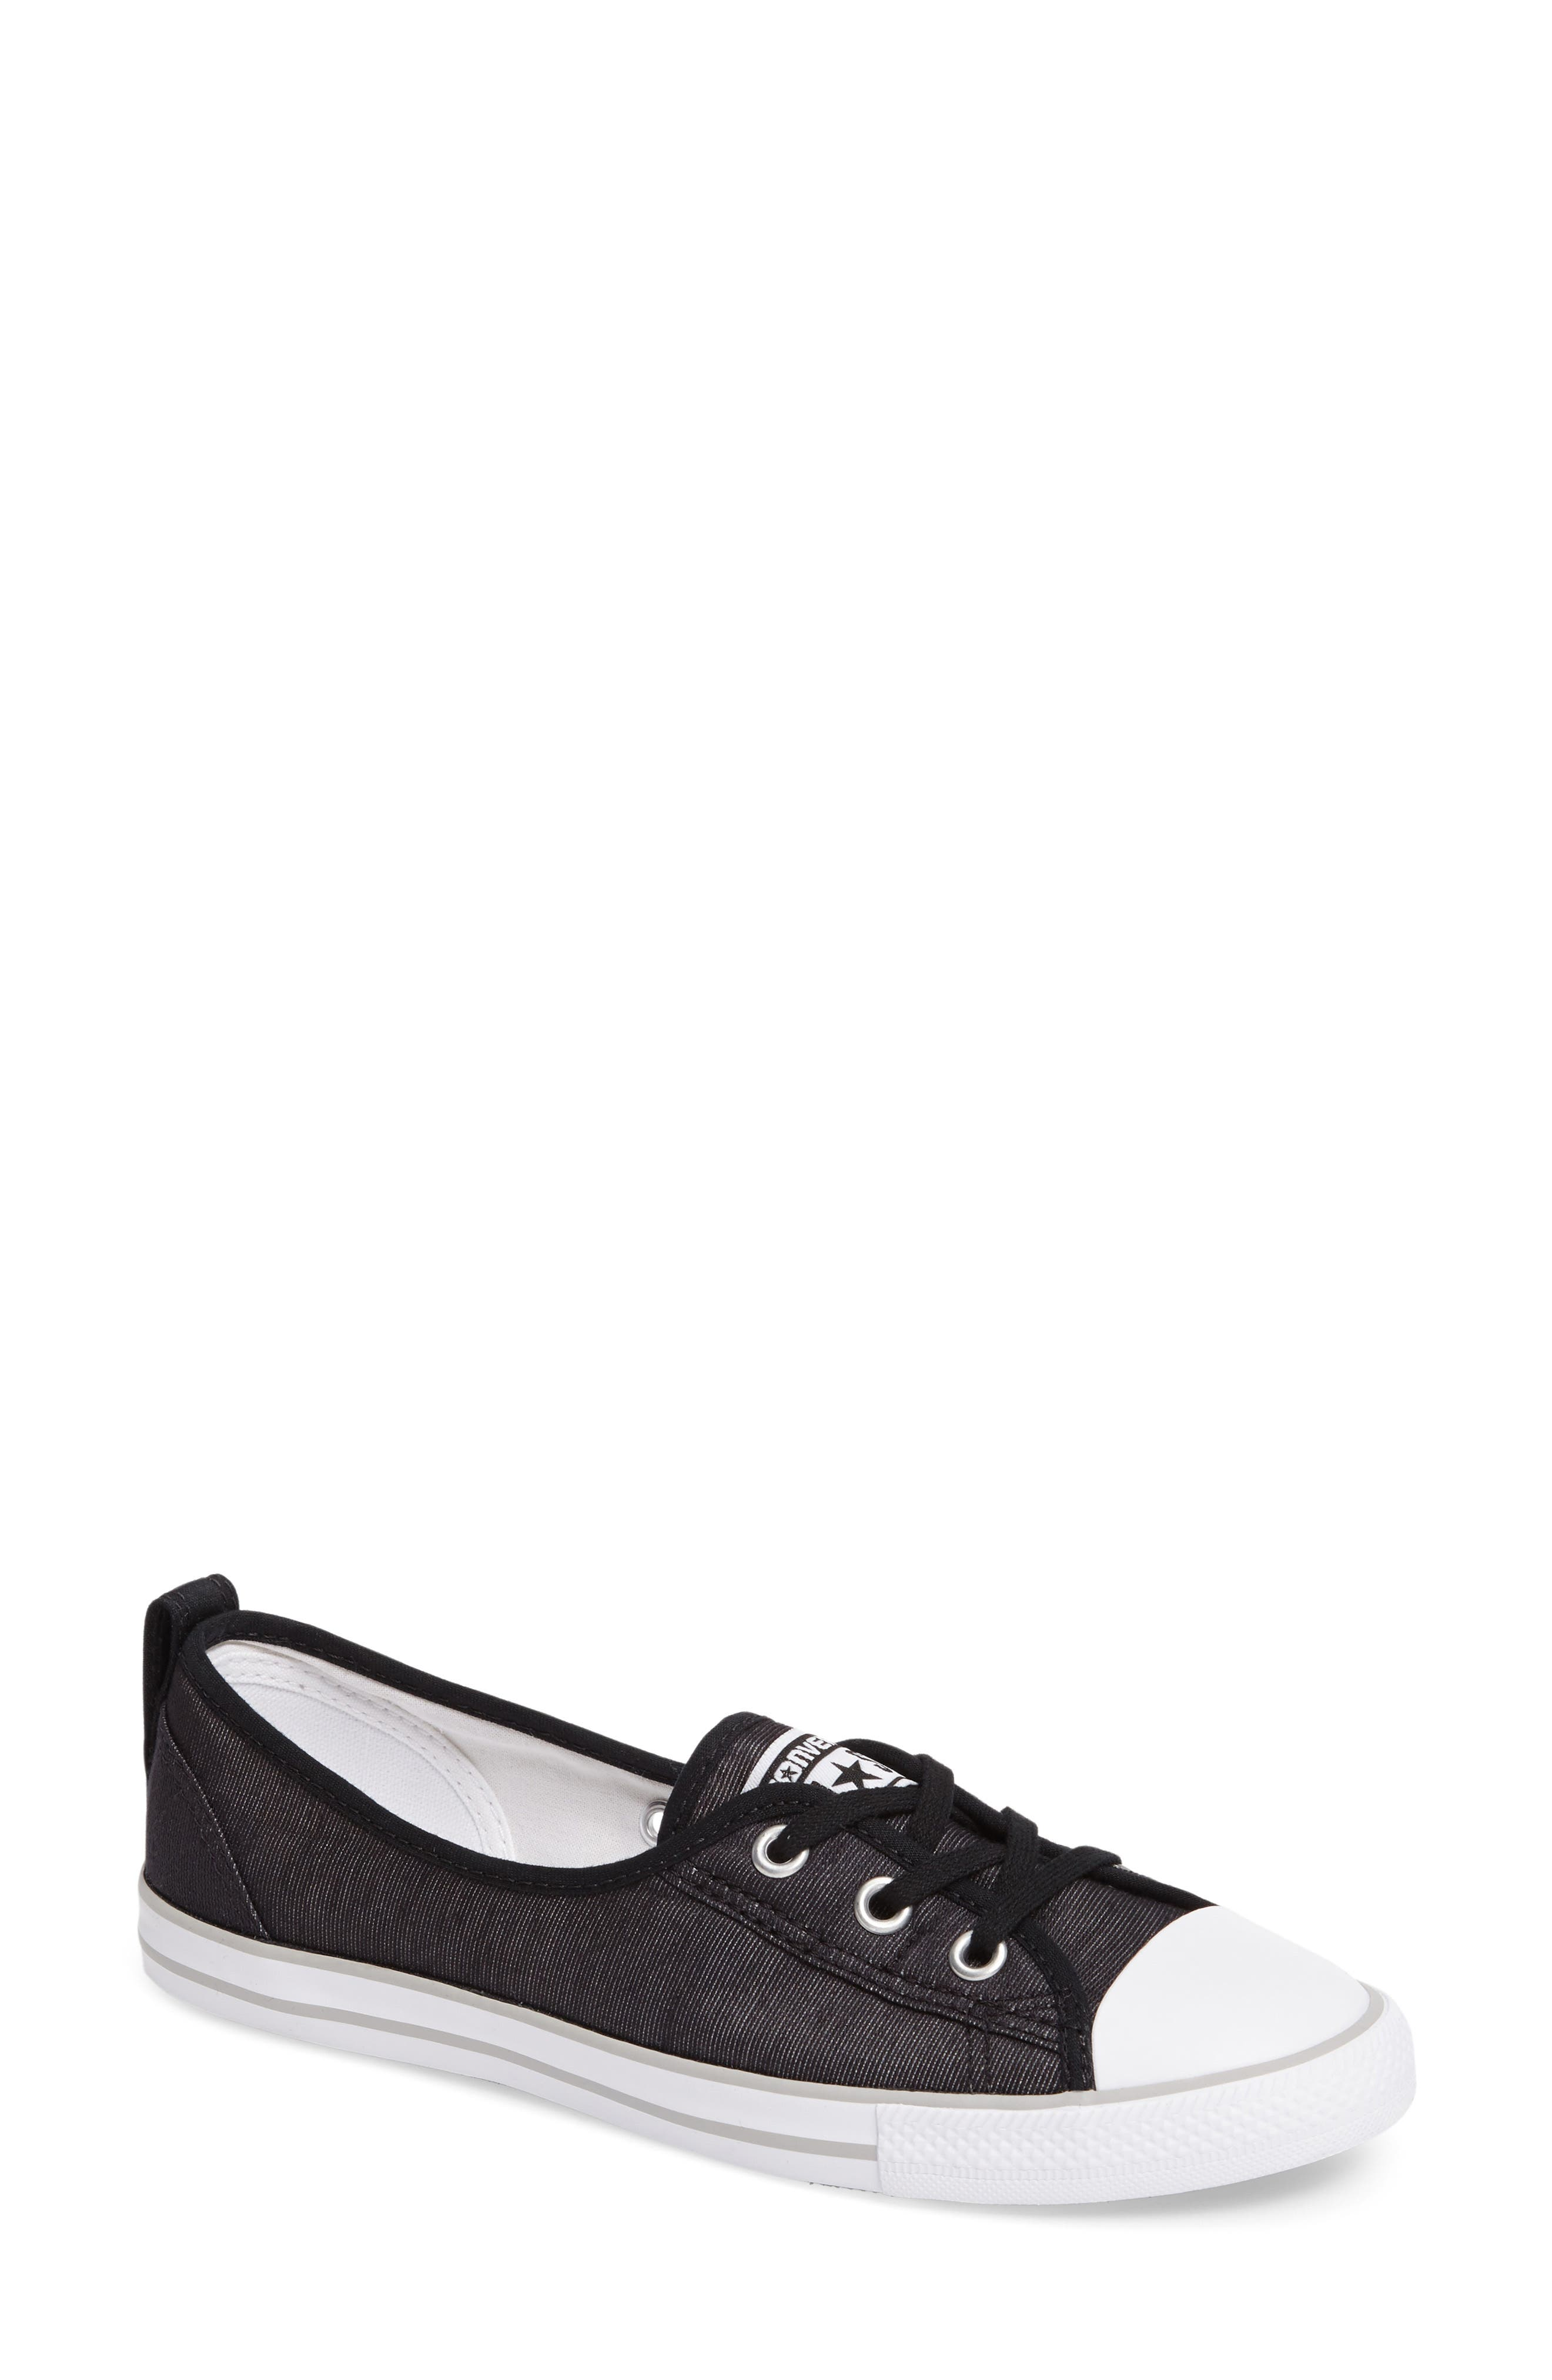 Chuck Taylor<sup>®</sup> All Star<sup>®</sup> Ballet Canvas Sneaker,                         Main,                         color, Black/ White/ Mouse